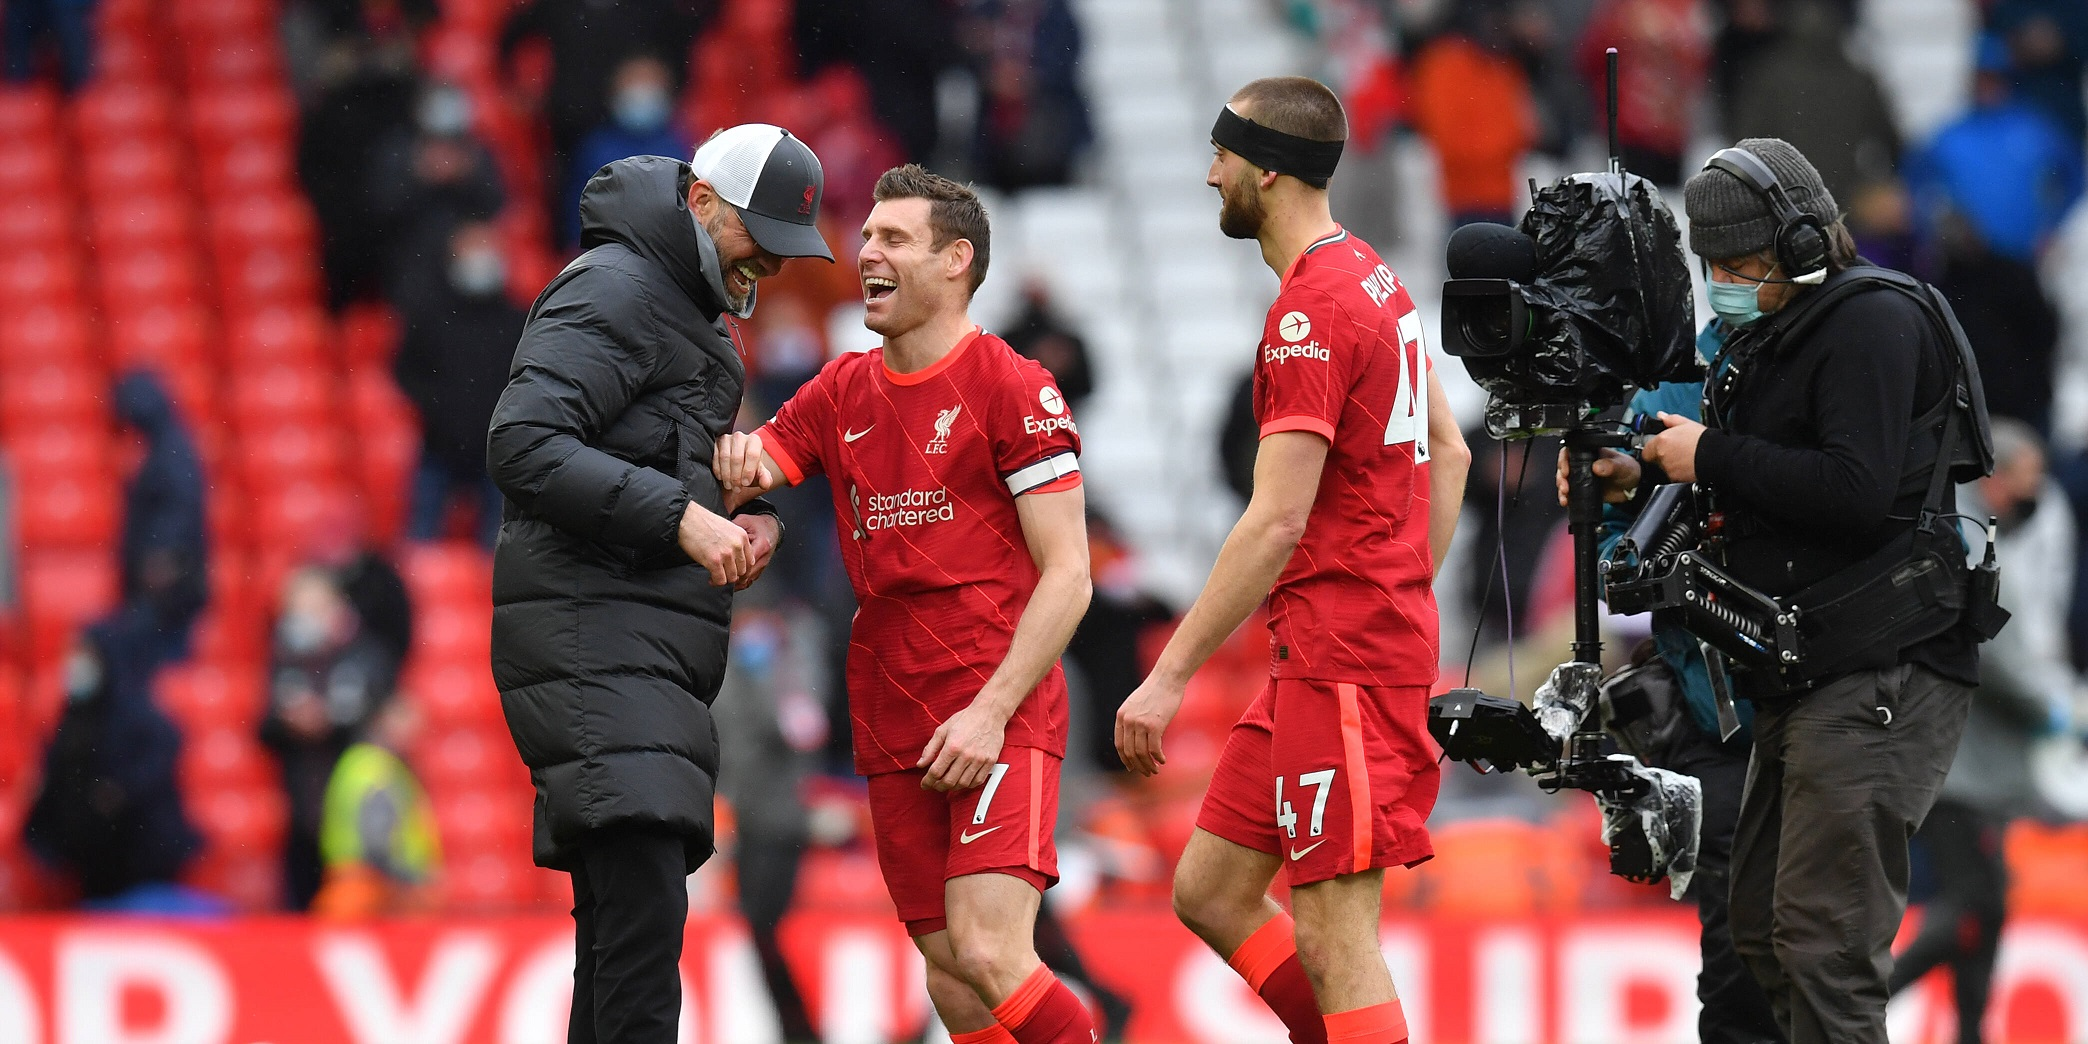 Klopp and current Liverpool player once came close to 'a physical fight', says ex-Red Ragnar Klavan